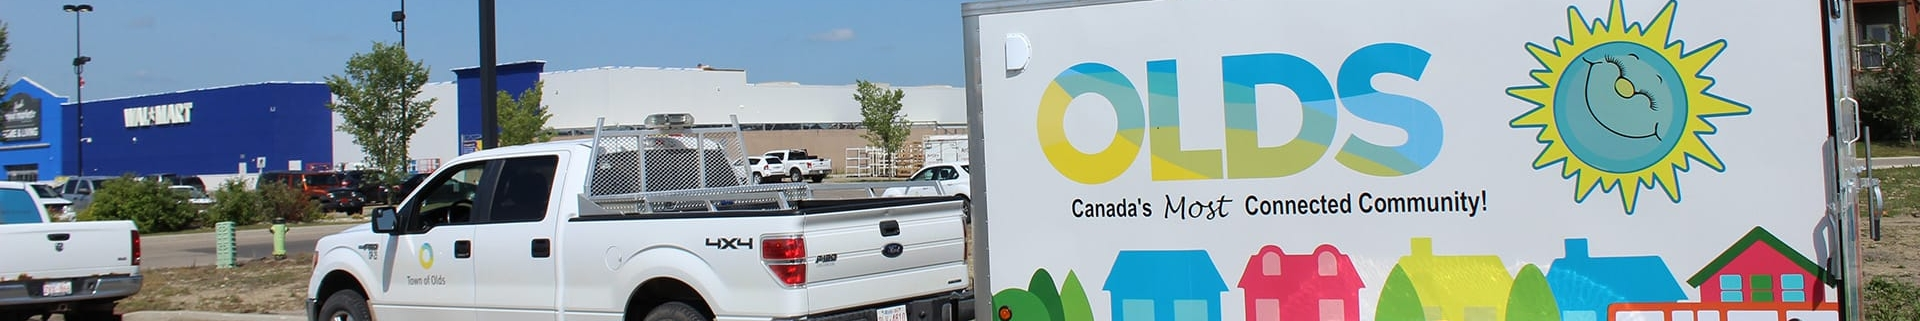 "White pick up truck with the Town of Olds municipal logo with a colourful trailer hitched to the back, reading ""Olds - Canada's most connected community!"""